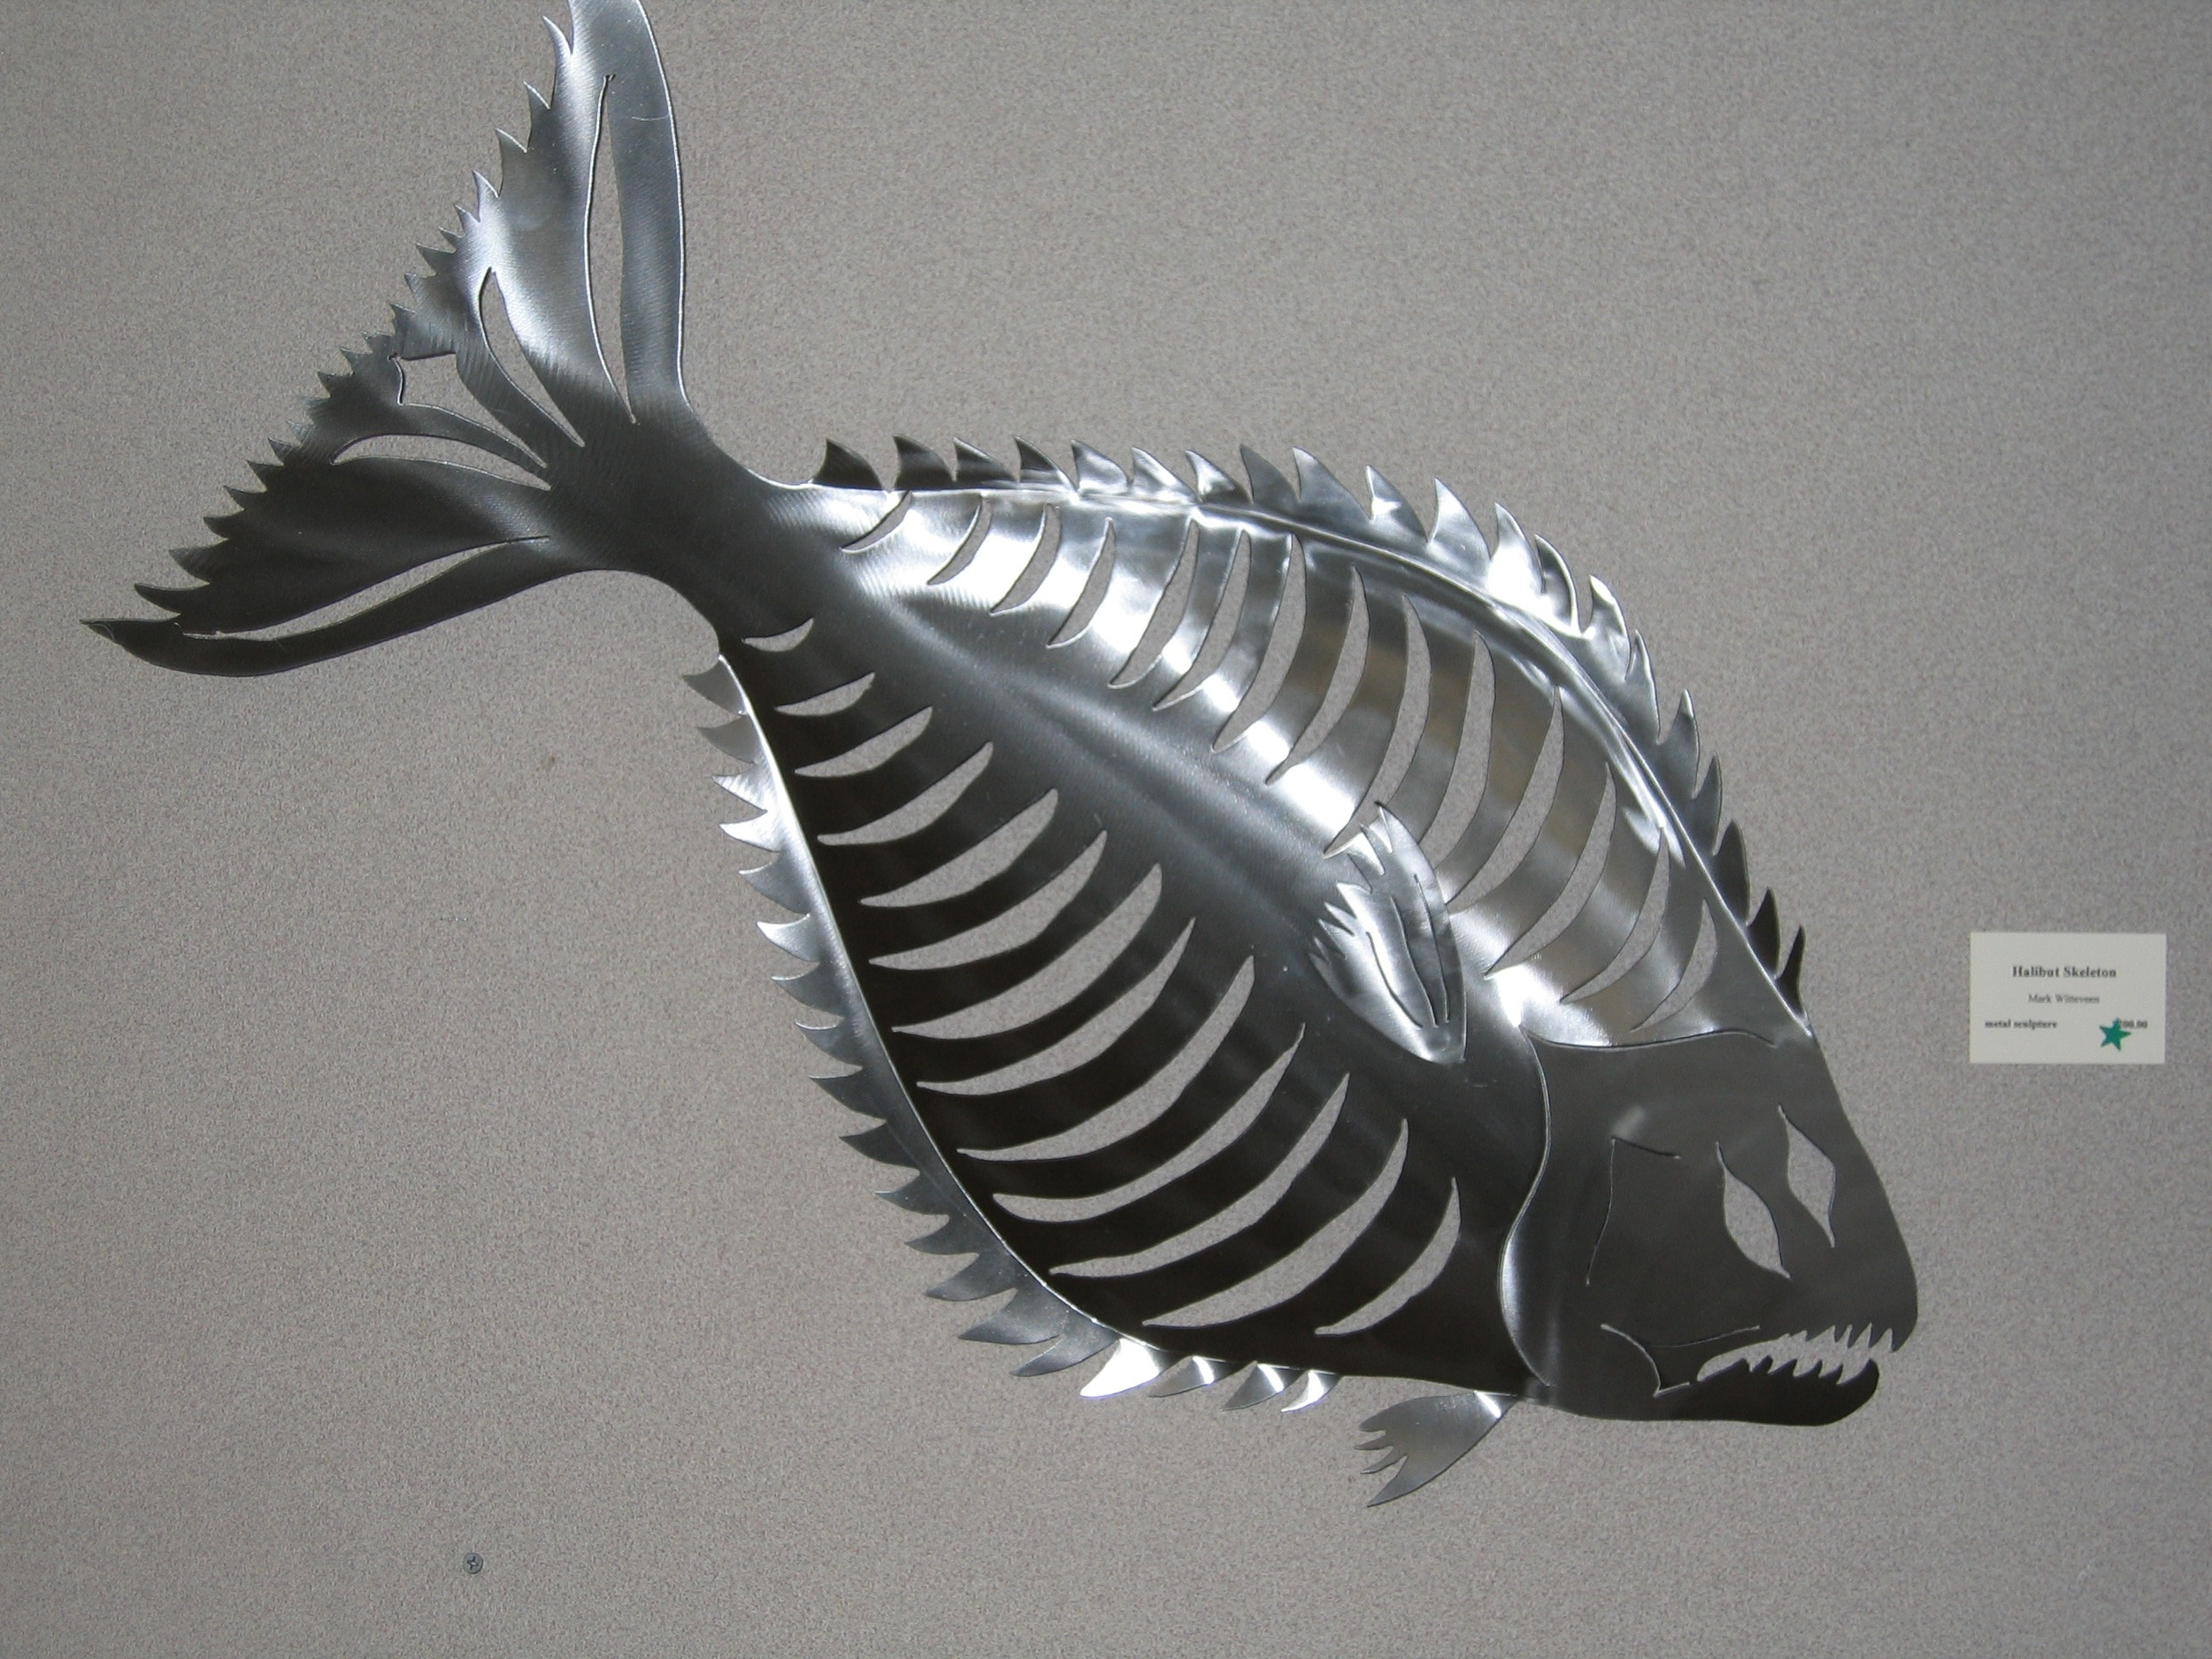 Halibut Skeleton